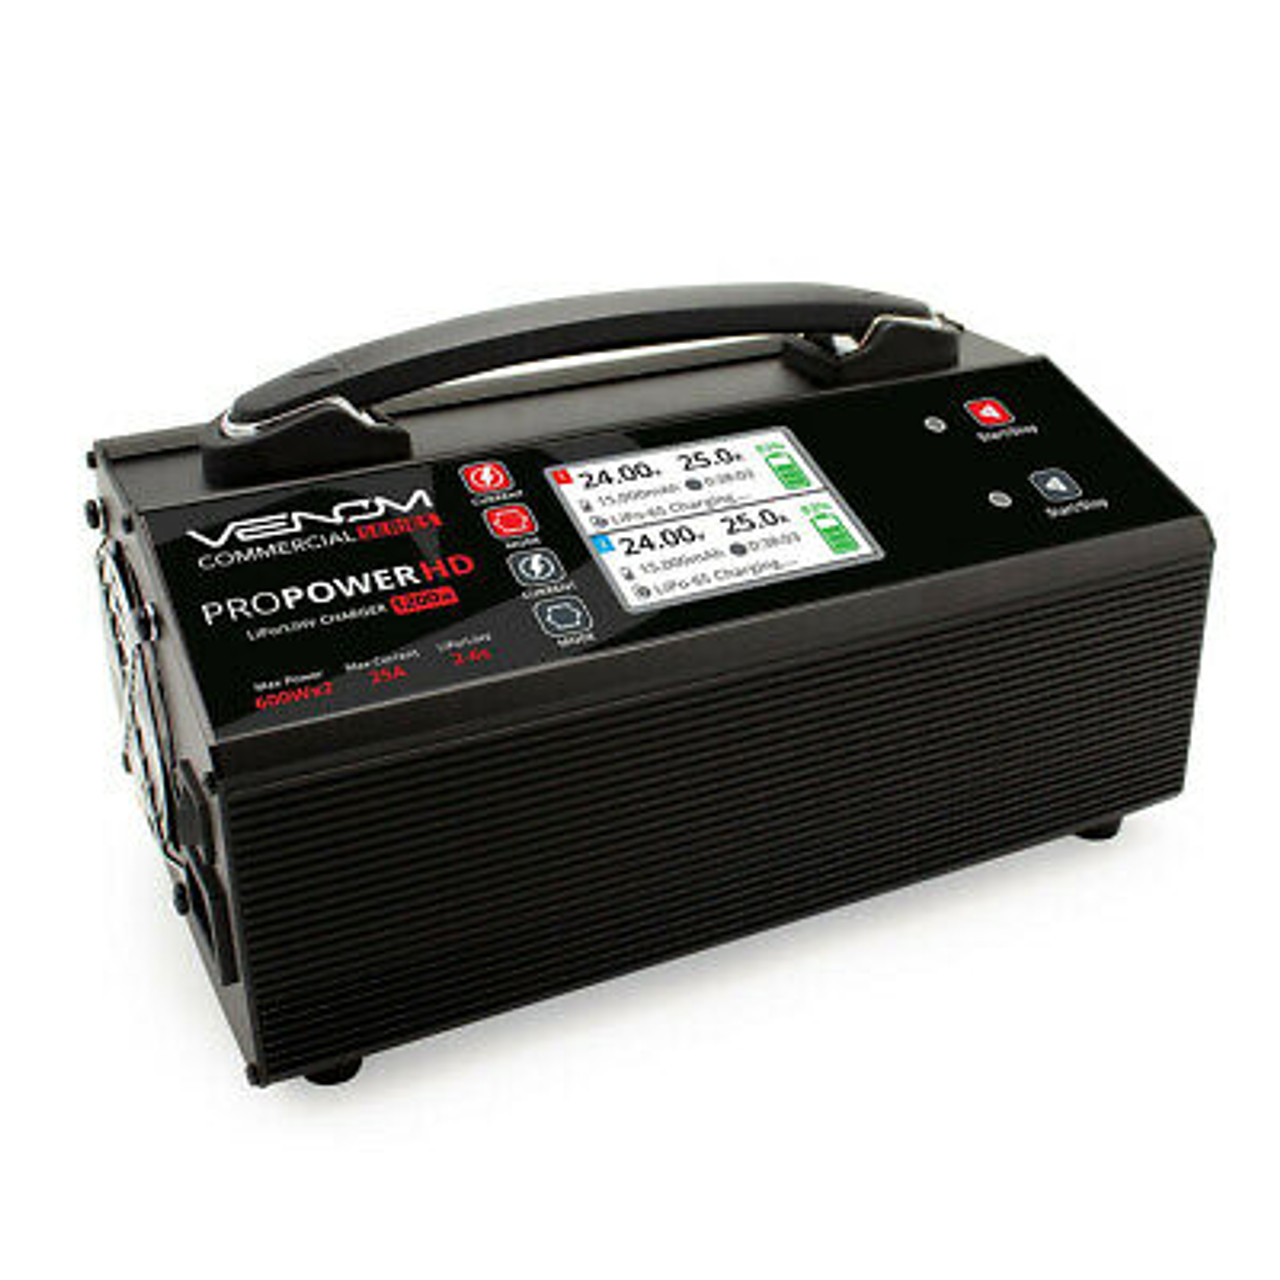 Venom Commercial Series Pro Power HD LiPo/LiHV Charger